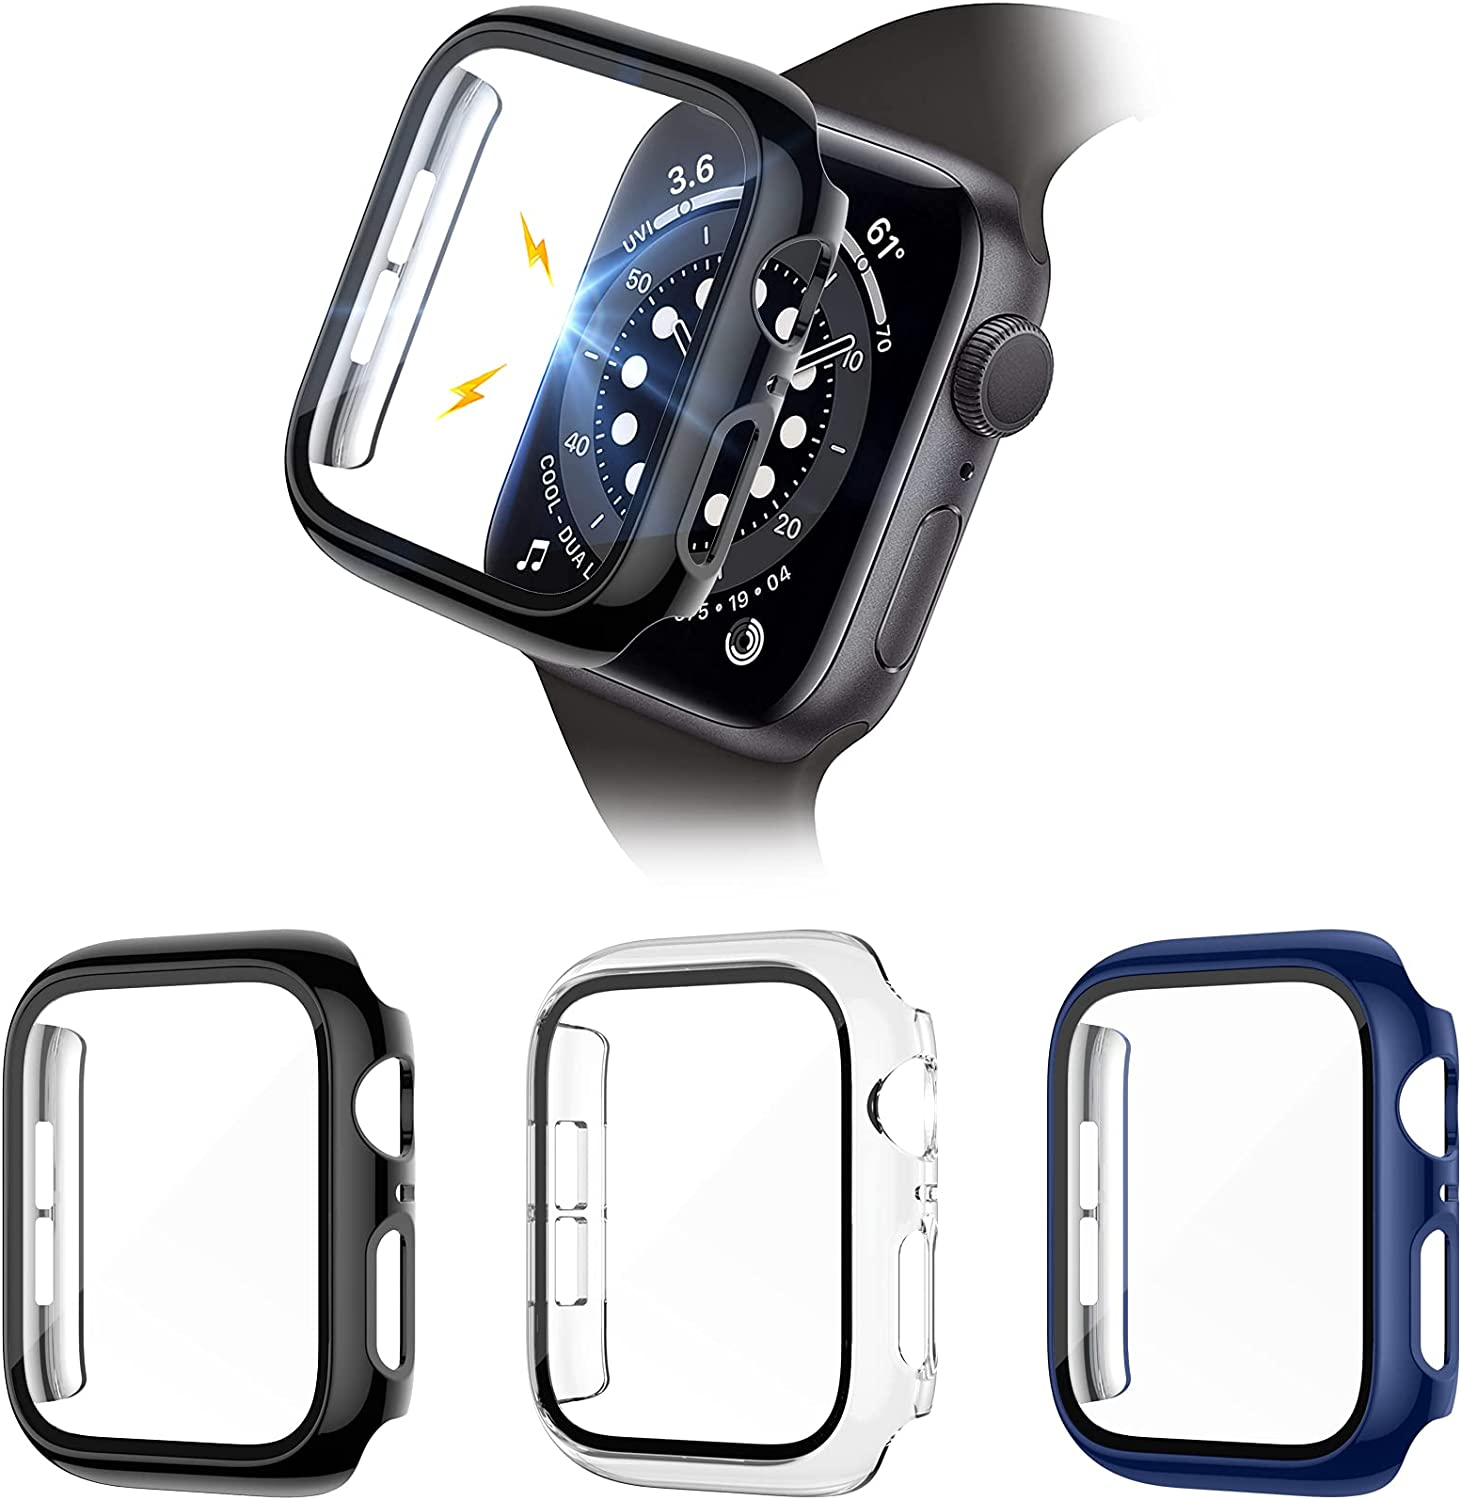 Liwin 3-Pack Tempered Glass Screen Protector Cases Compatible with Apple Watch SE/Series 6/5 / 4 40mm, HD Hard PC Protective Cover Compatible with iWatch Series SE / 6/5 / 4